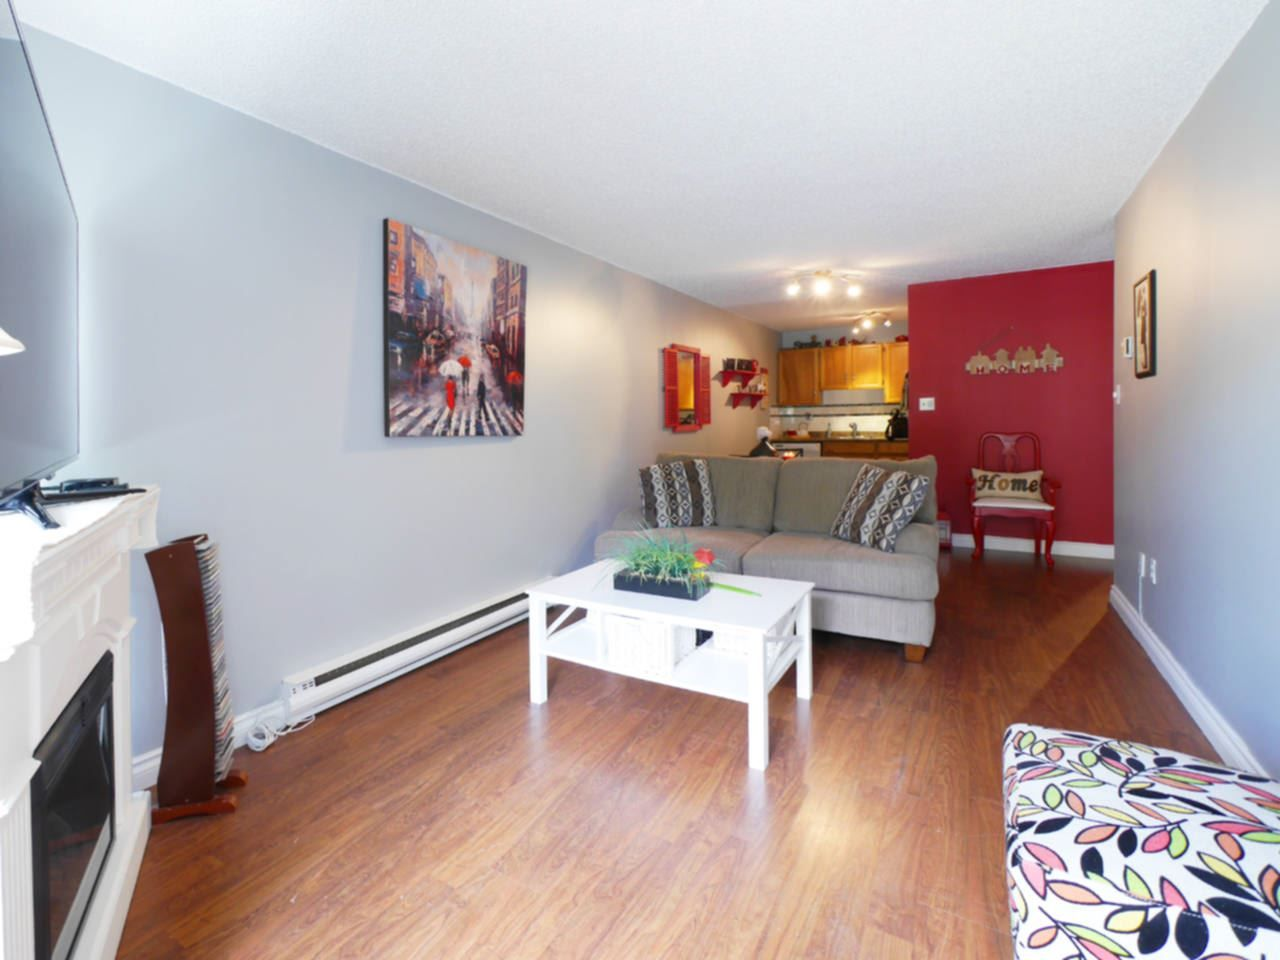 """Photo 16: Photos: 105 9952 149 Street in Surrey: Guildford Condo for sale in """"Tall Timbers"""" (North Surrey)  : MLS®# R2107429"""